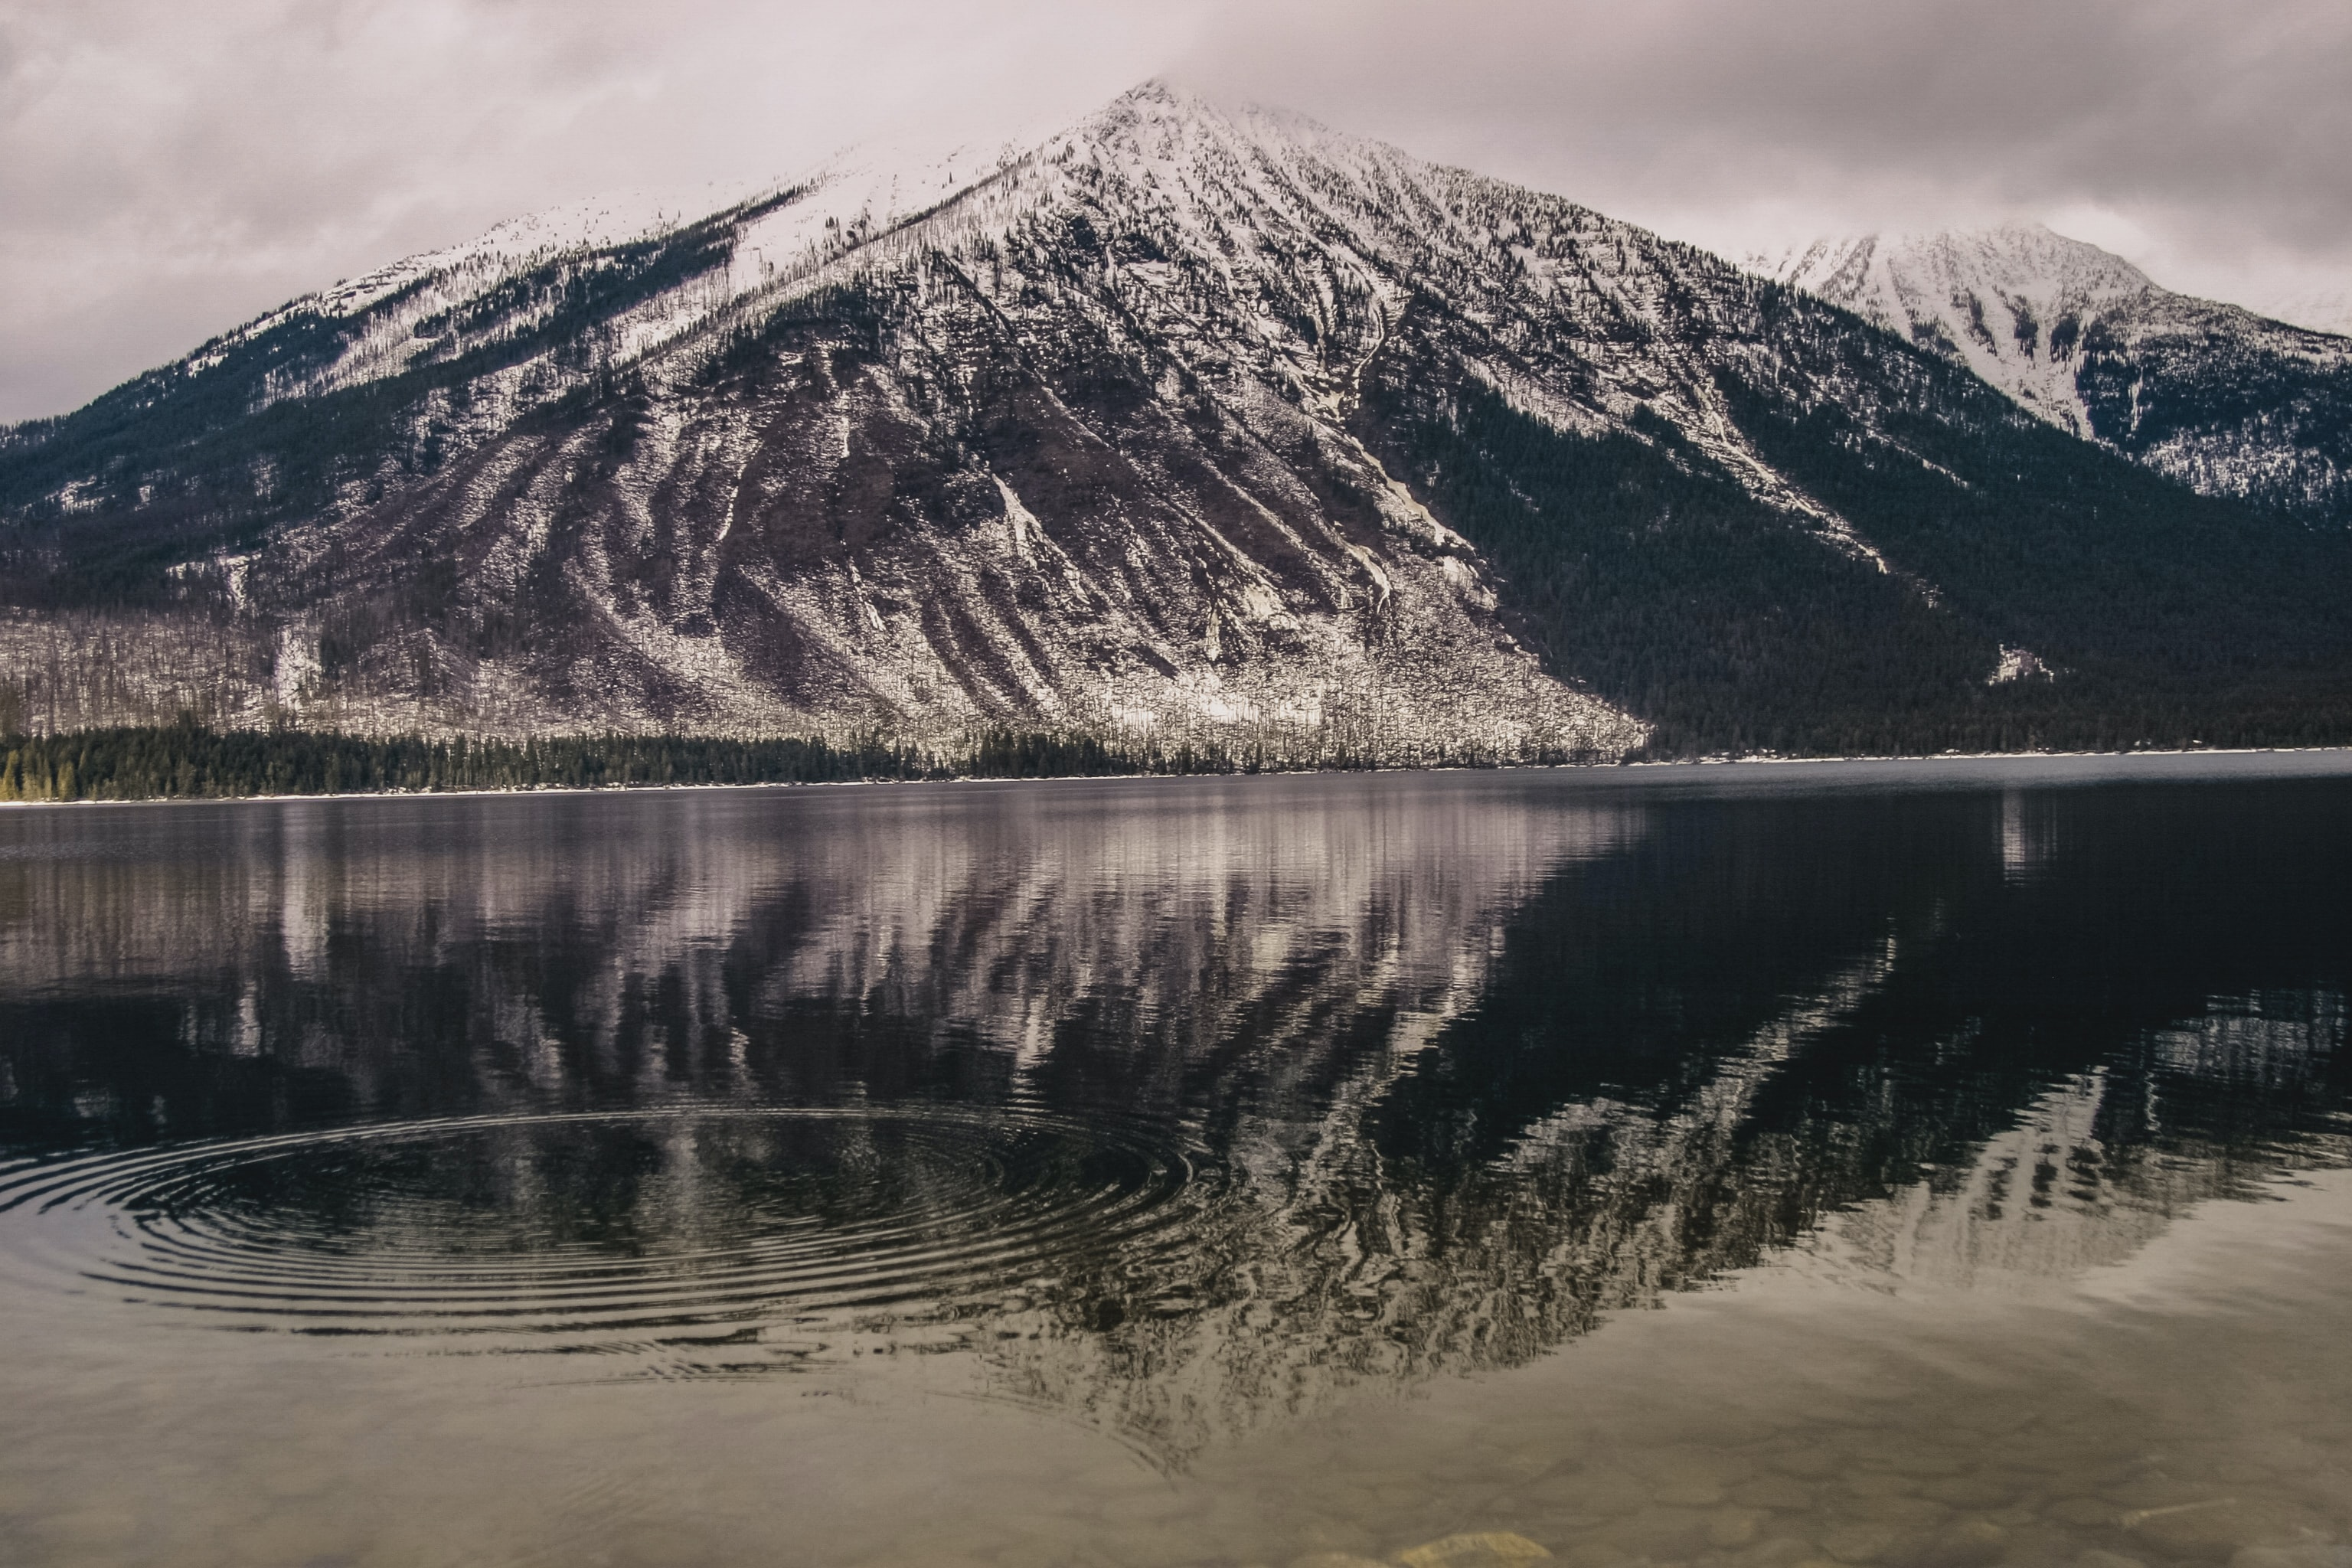 Ripples on the surface of a lake beneath a snow-capped mountain